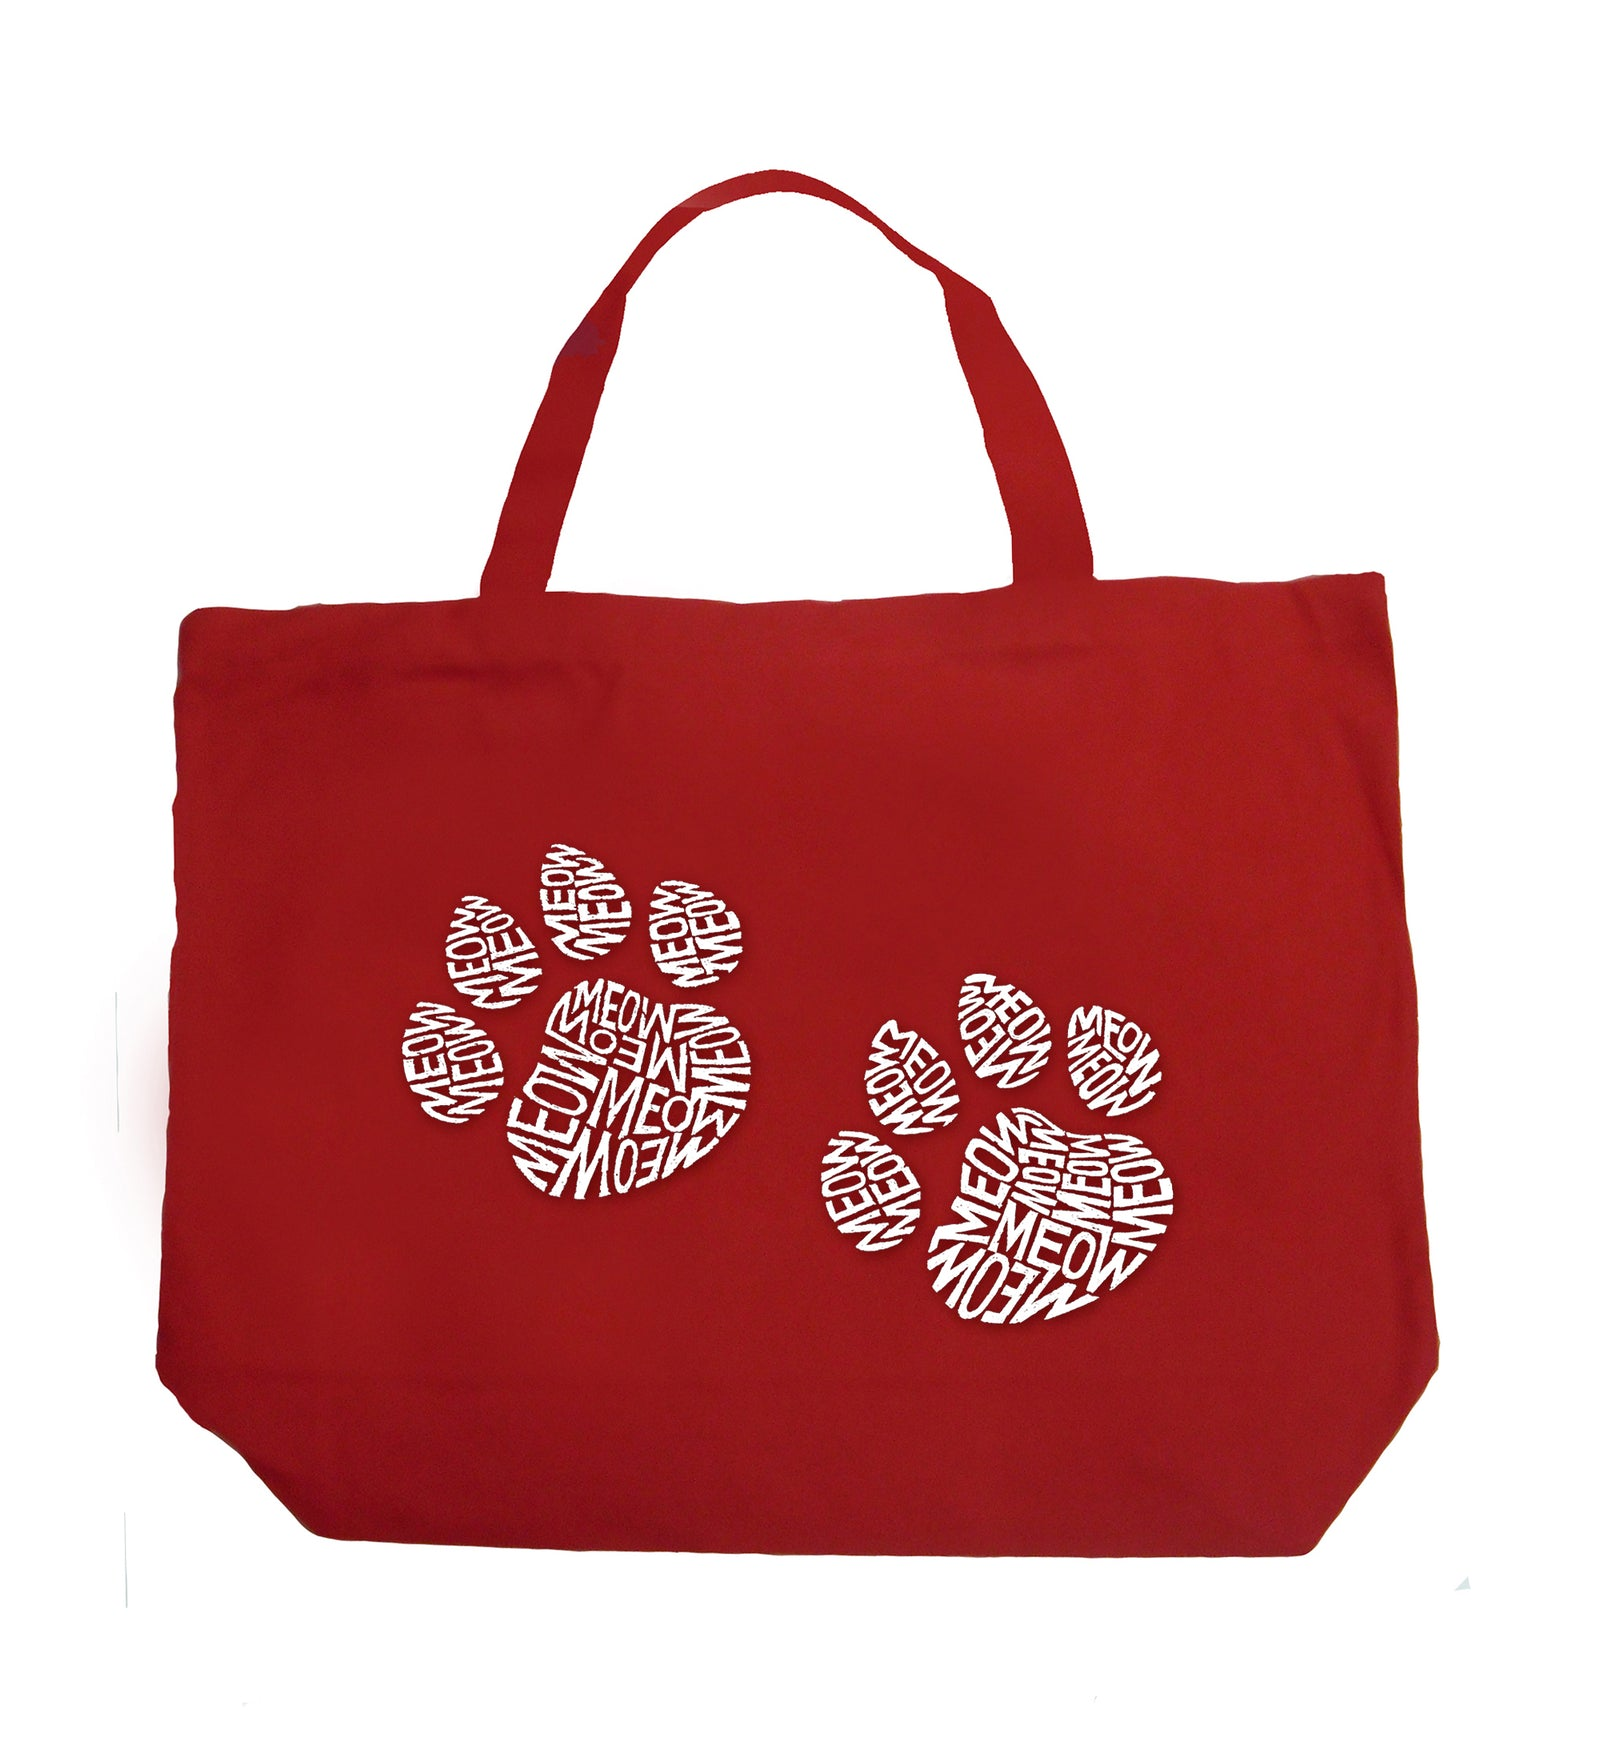 Large Word Art Tote Bag - Meow Cat Prints